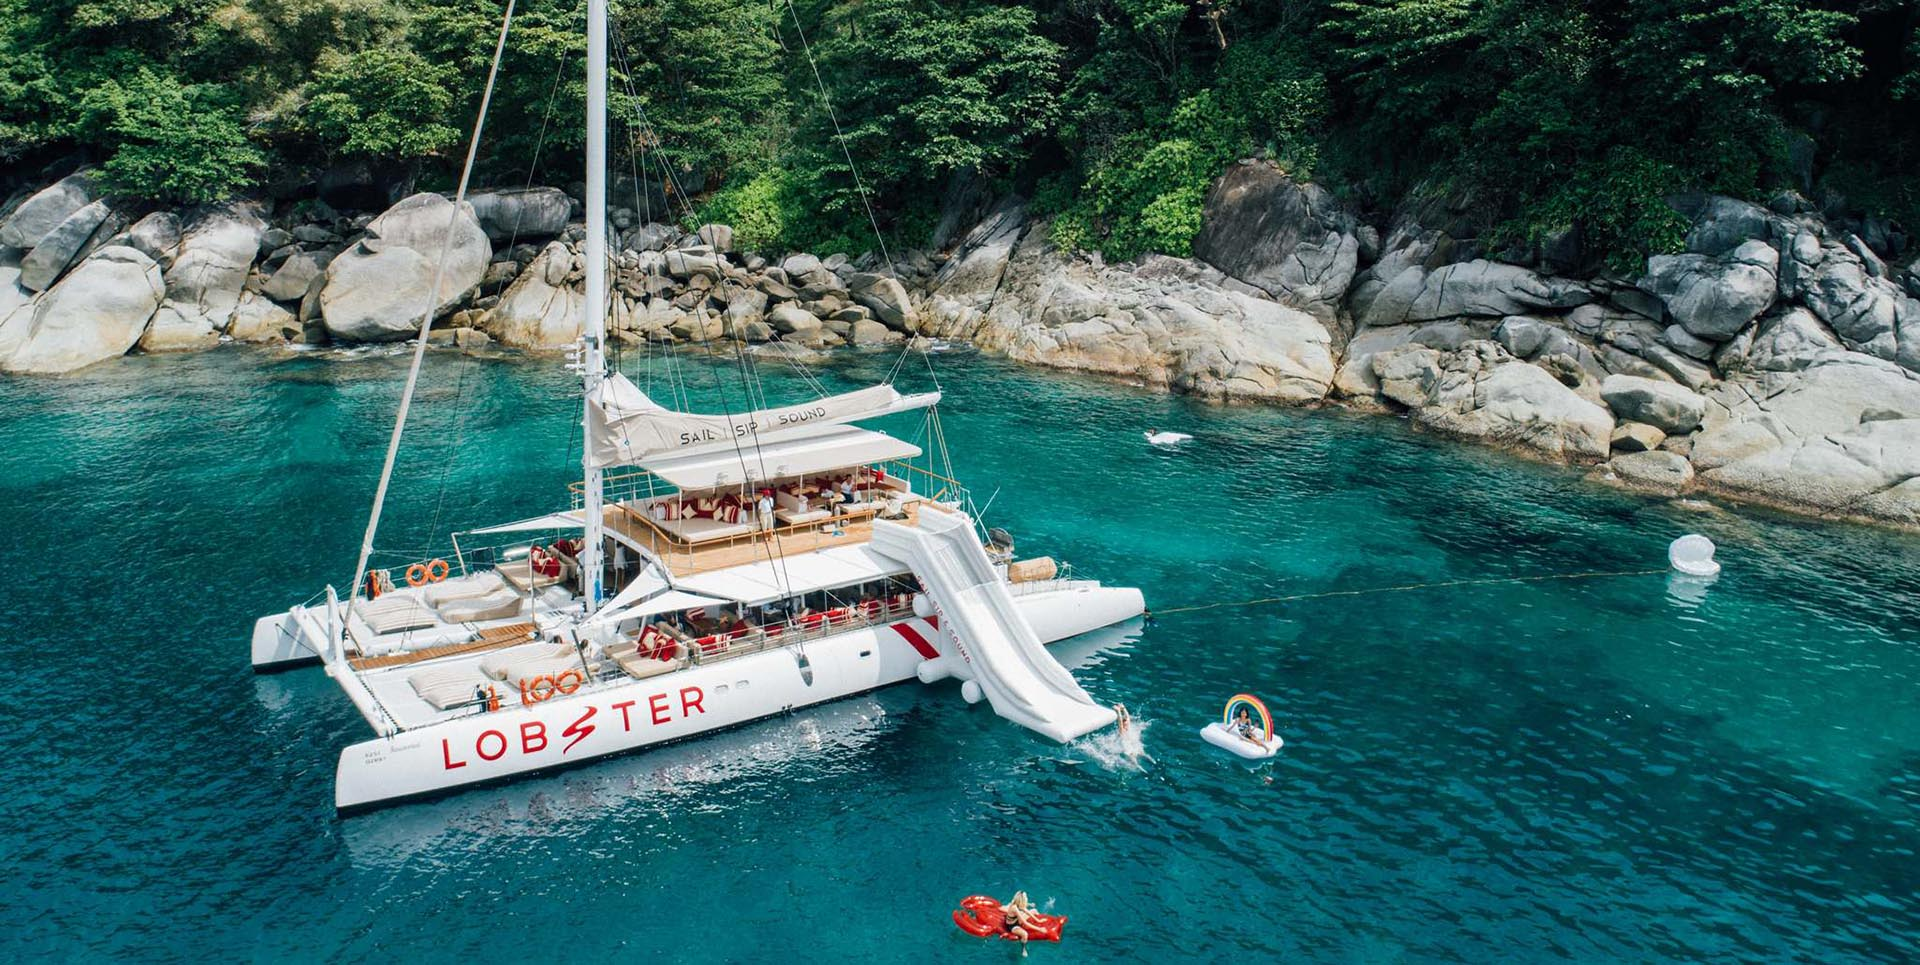 Lobster-Yacht, Honeymoon Resort in Phuket, Honeymoon Package, Romantic Resort, Ayurveda, Wellness, Yoga Retreats Phuket Thailand, Mangosteen Ayurveda & Wellness Resort, Rawai, Phuket.